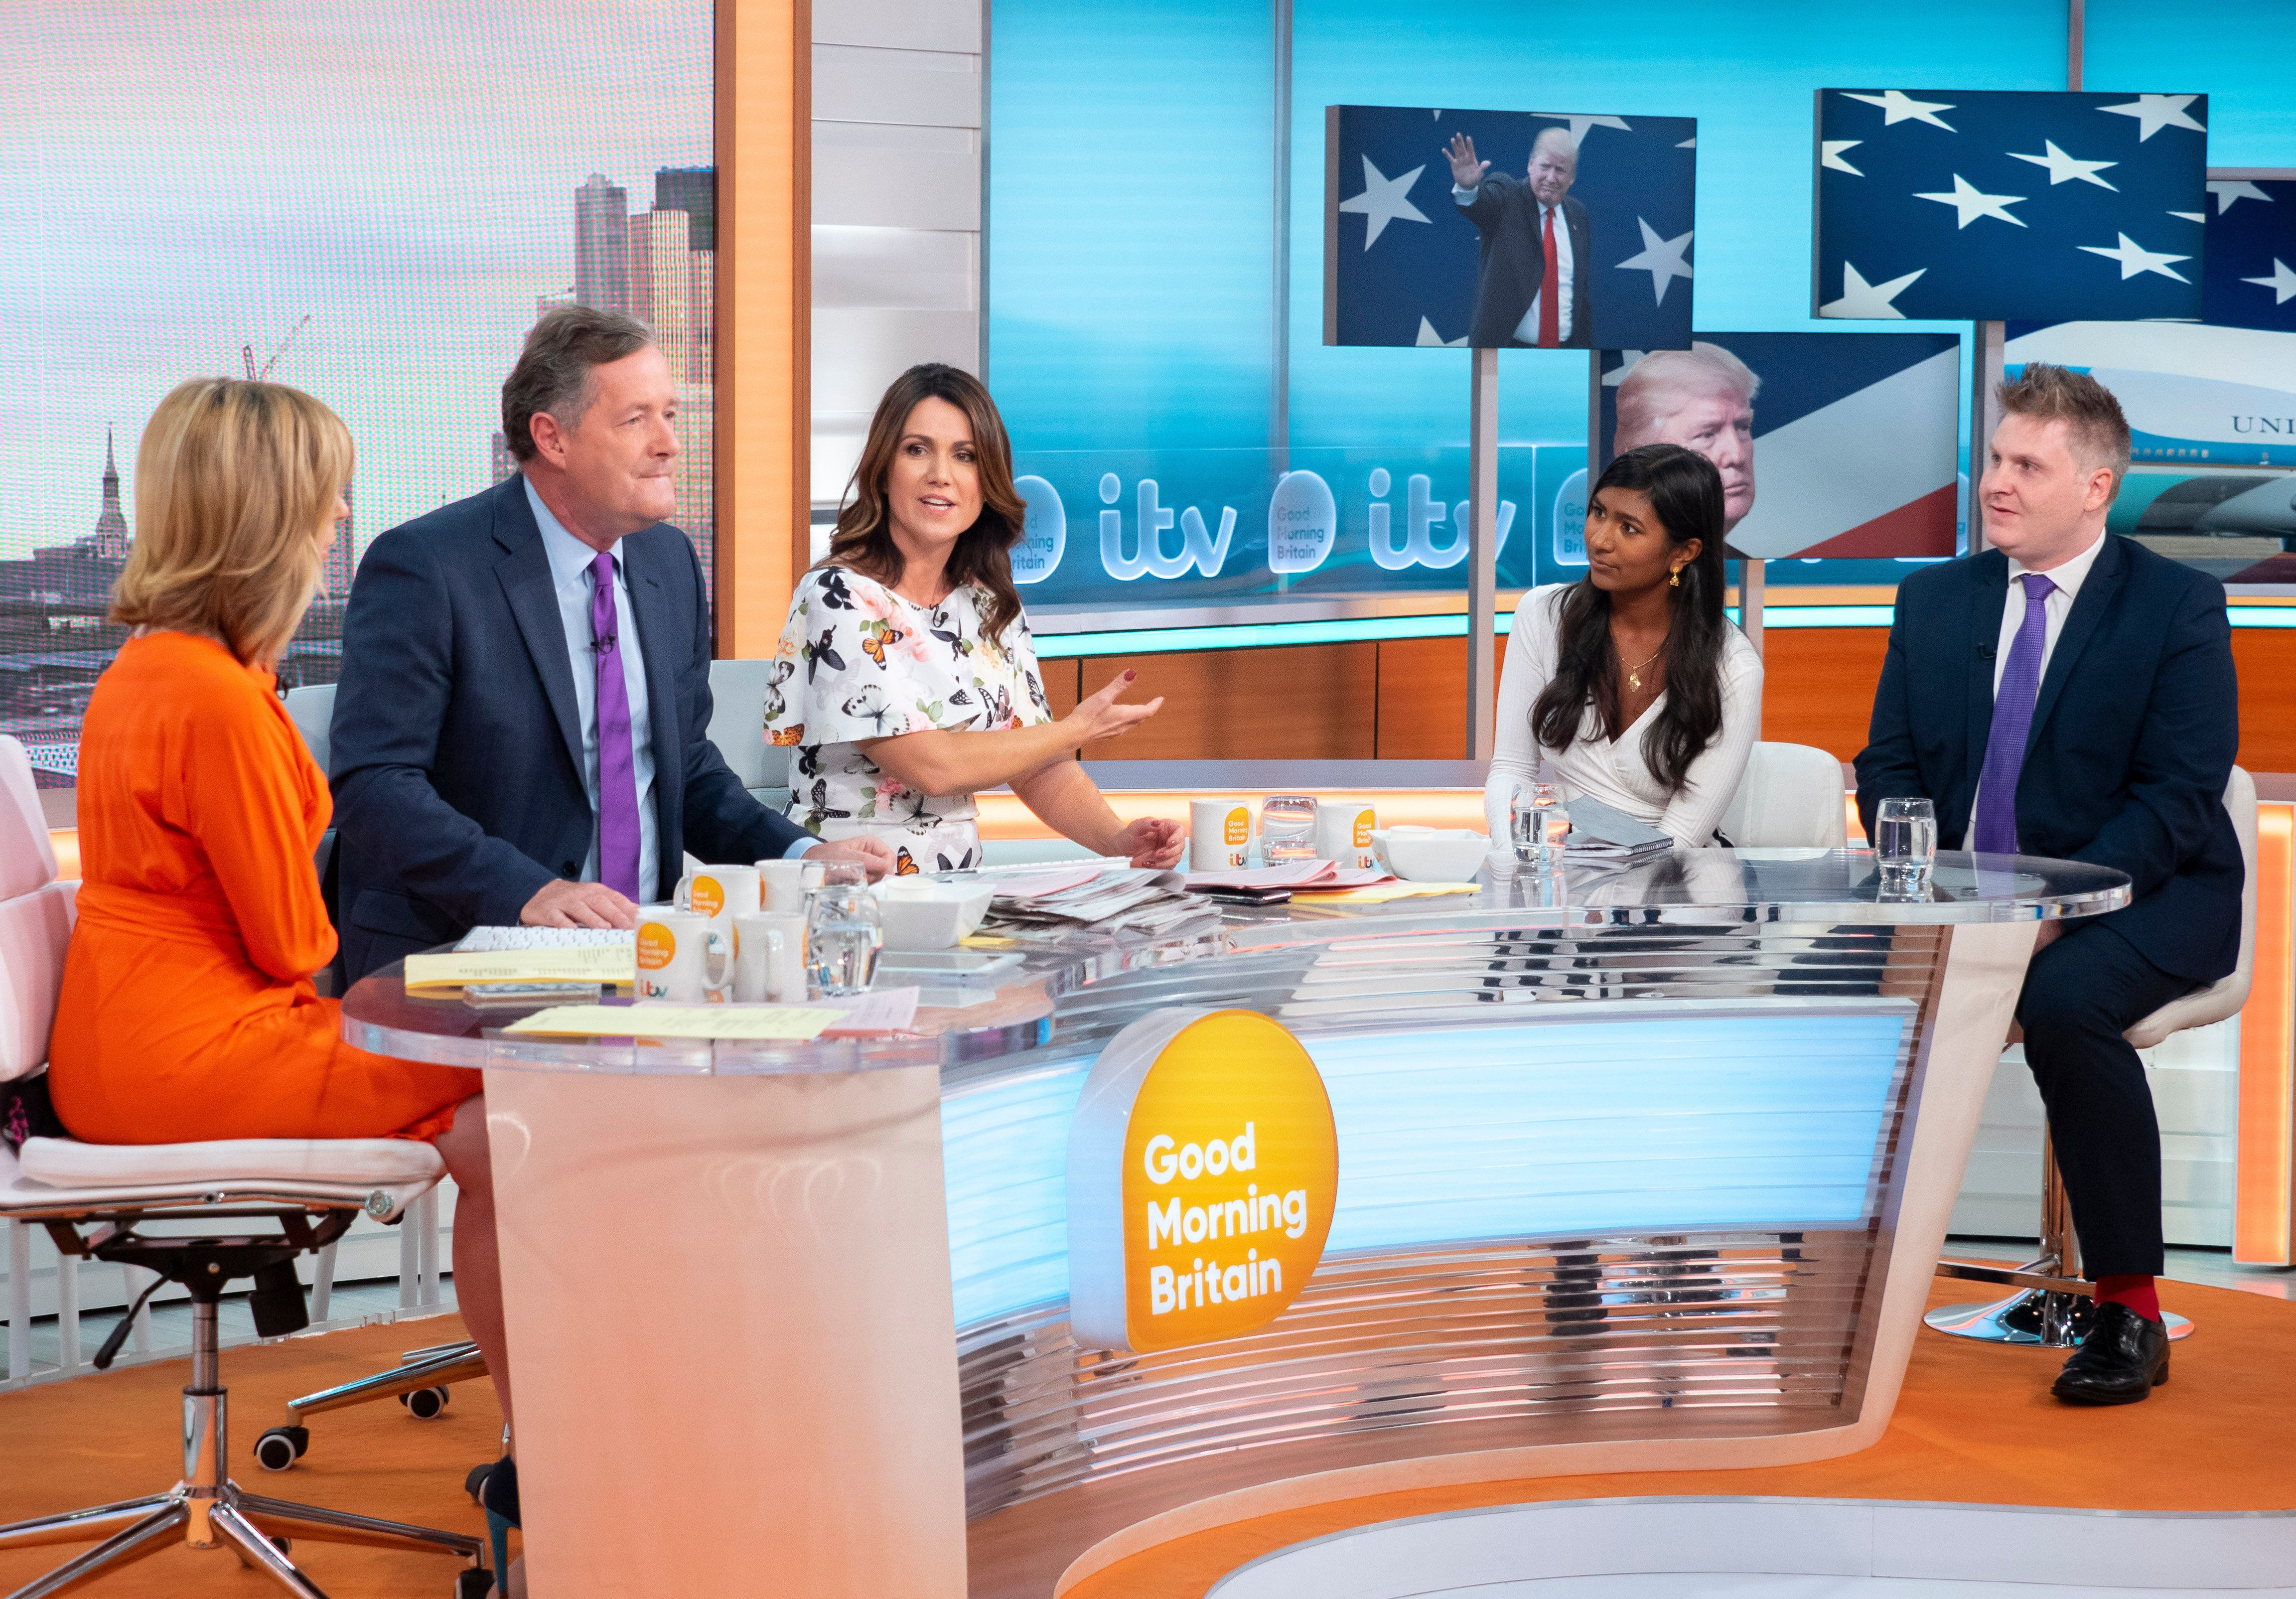 'Good Morning Britain' Guest Brands Piers Morgan An 'Idiot' For Not Knowing His